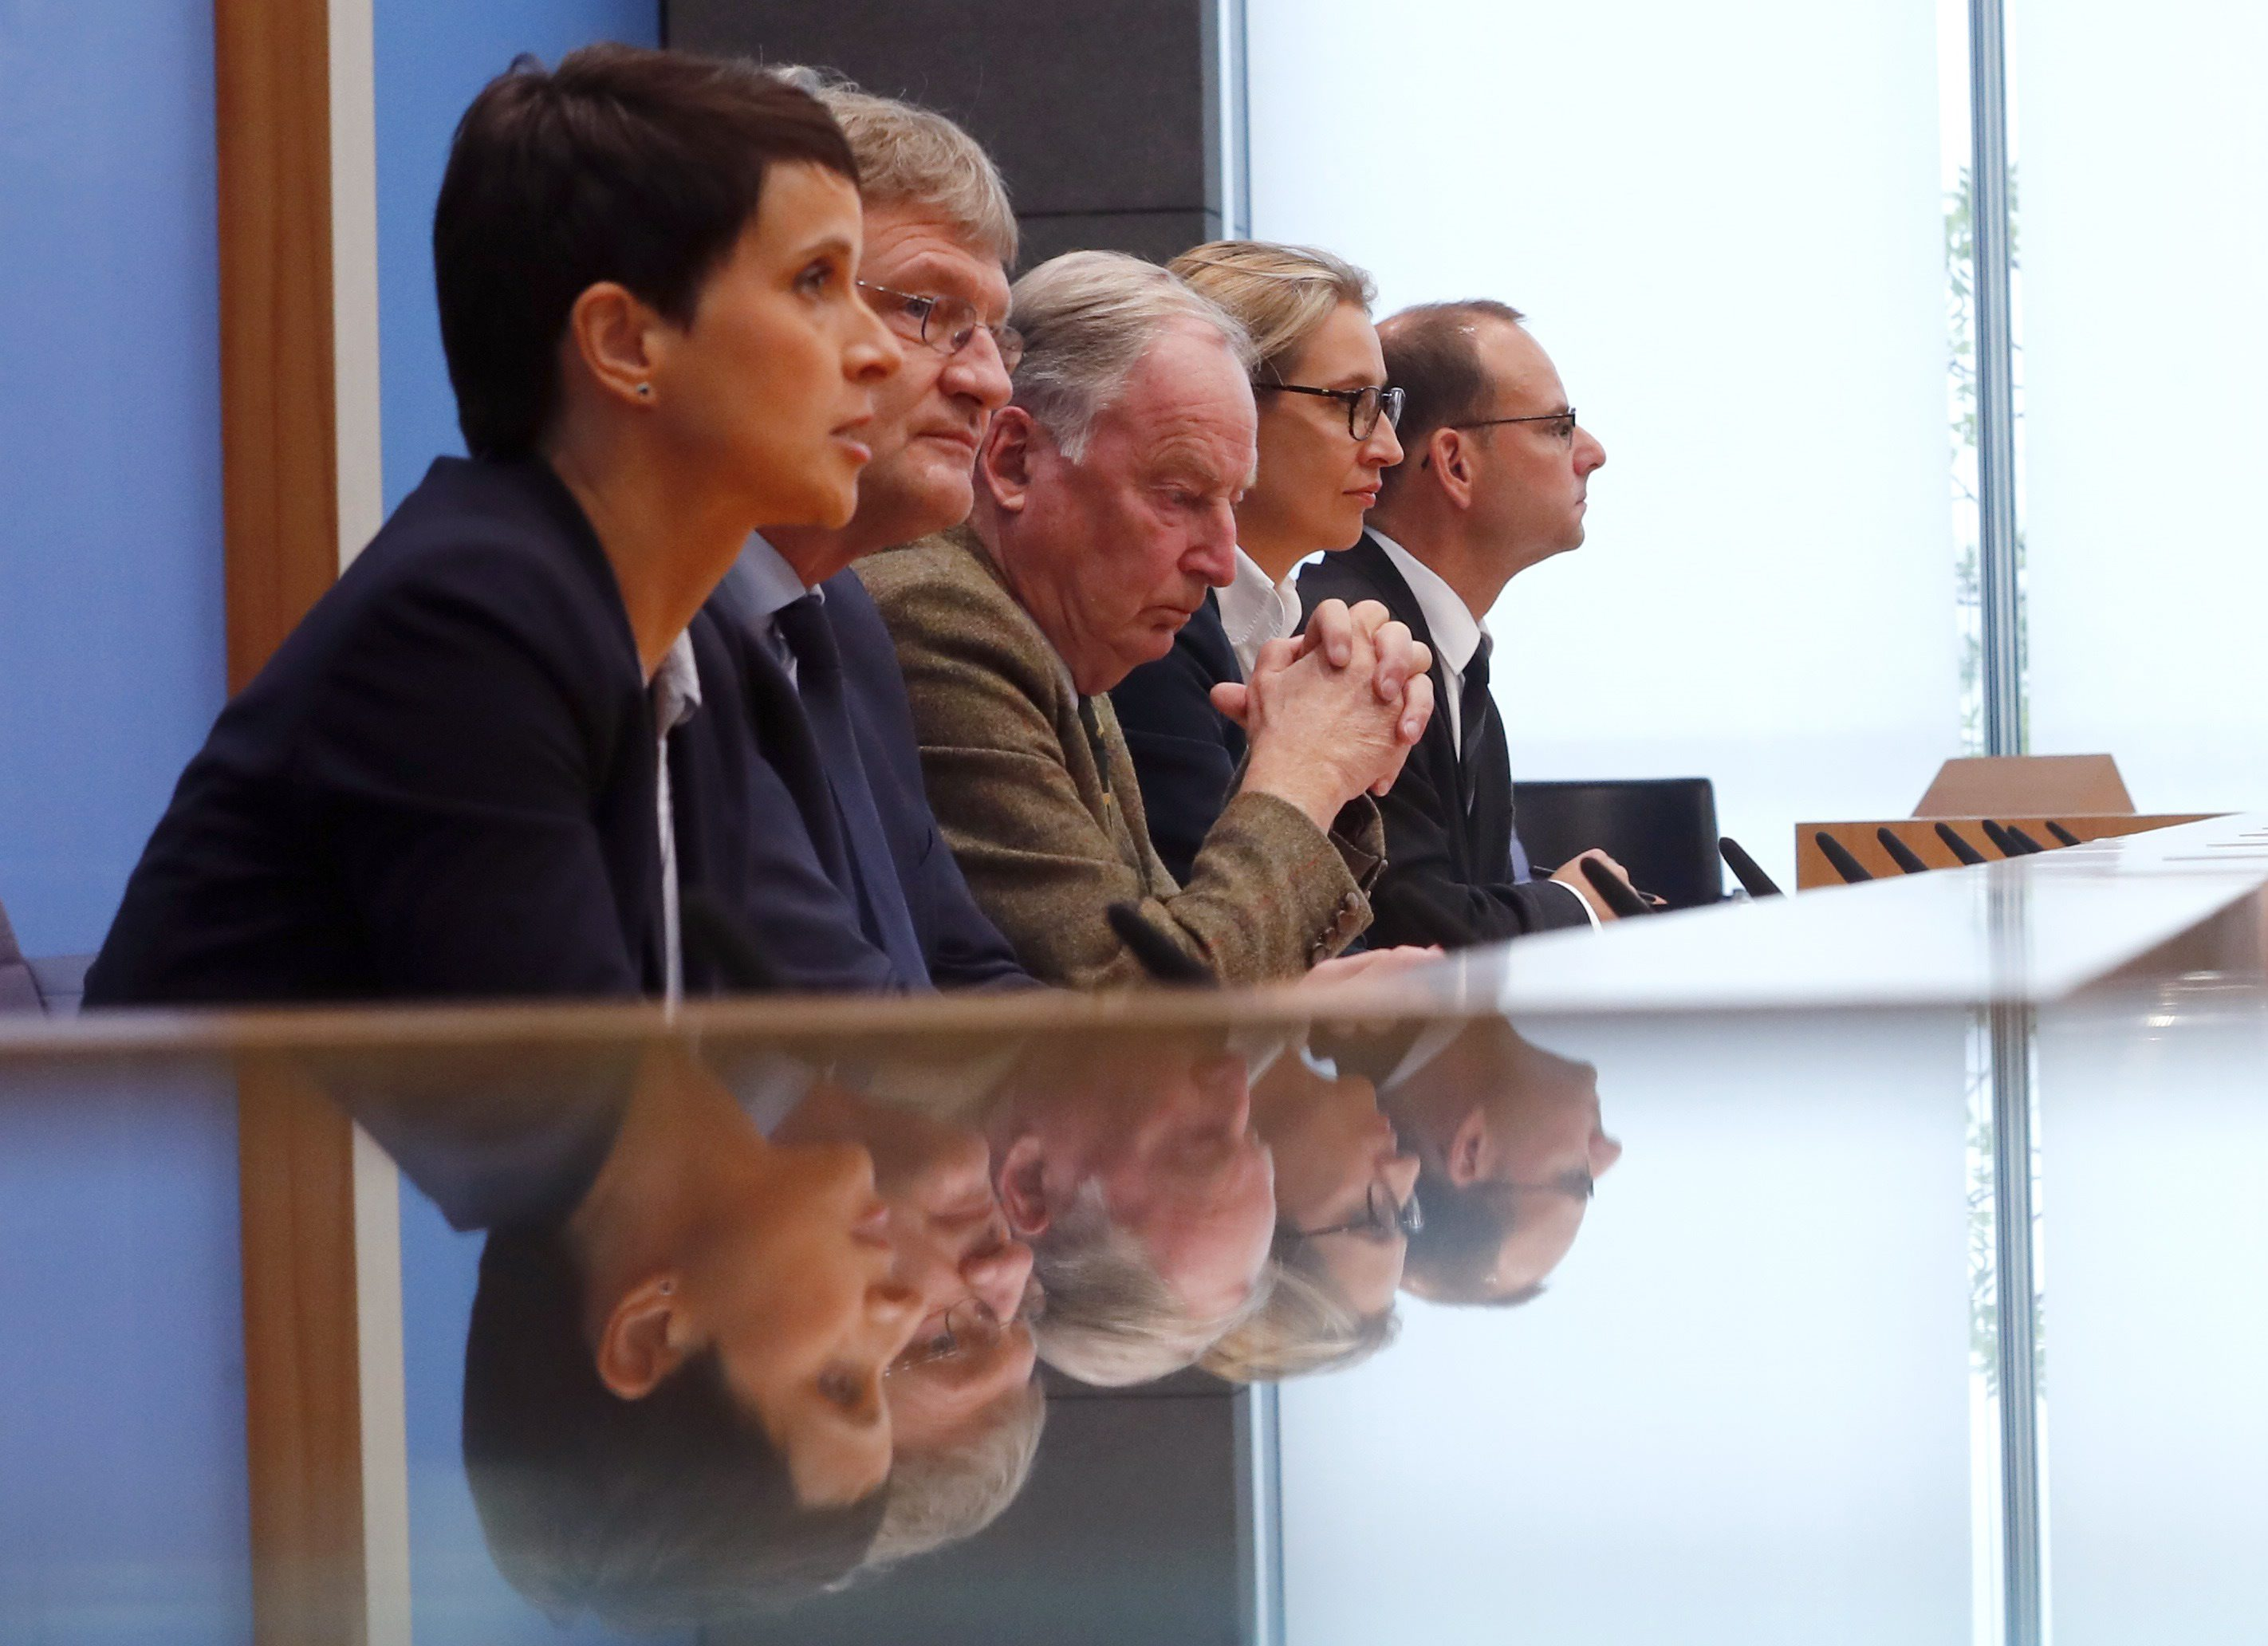 Frauke Petry (L), chairwoman of the anti-immigration party Alternative fuer Deutschland (AfD) speaks next to Joerg Meuthen (2nd L), leader of the party and top candidates Alice Weidel (2nd R) and Alexander Gauland before a news conference in Berlin, Germany, September 25, 2017. REUTERS/Fabrizio Bensch